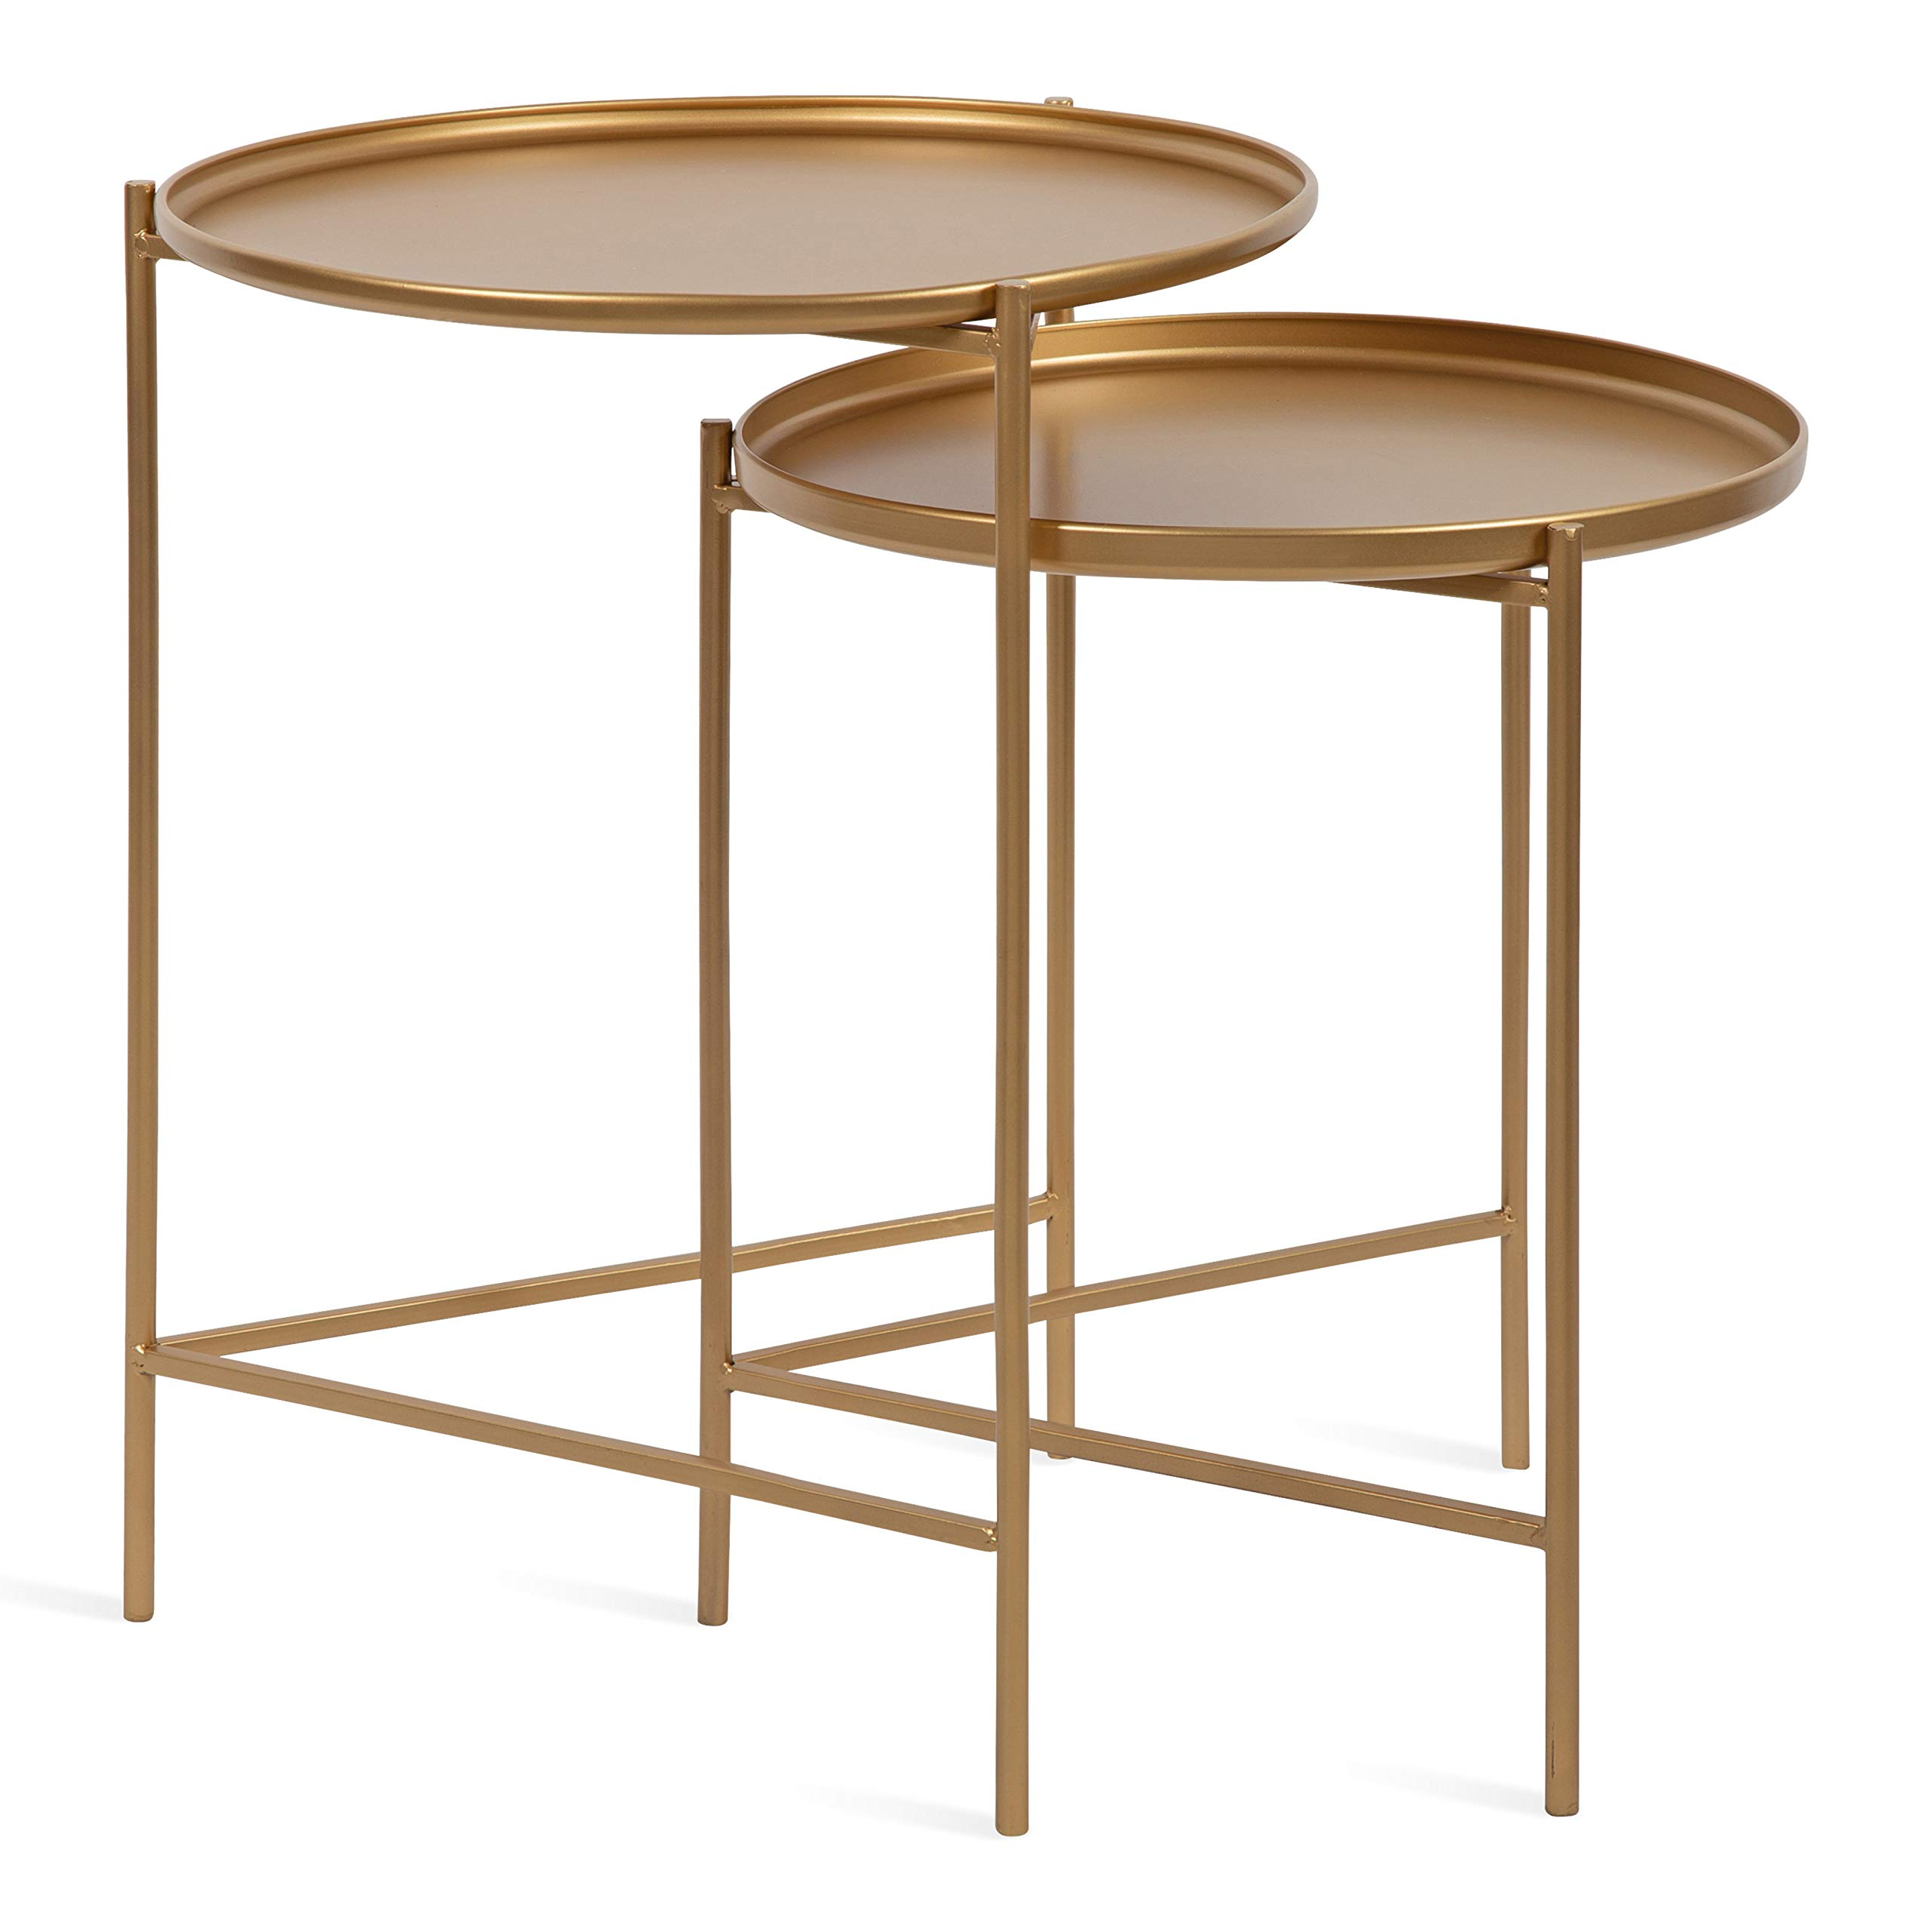 Kate and Laurel Ulani Set of 2 Modern Glam Nested Round Metal End Tables, Gold by Kate and Laurel